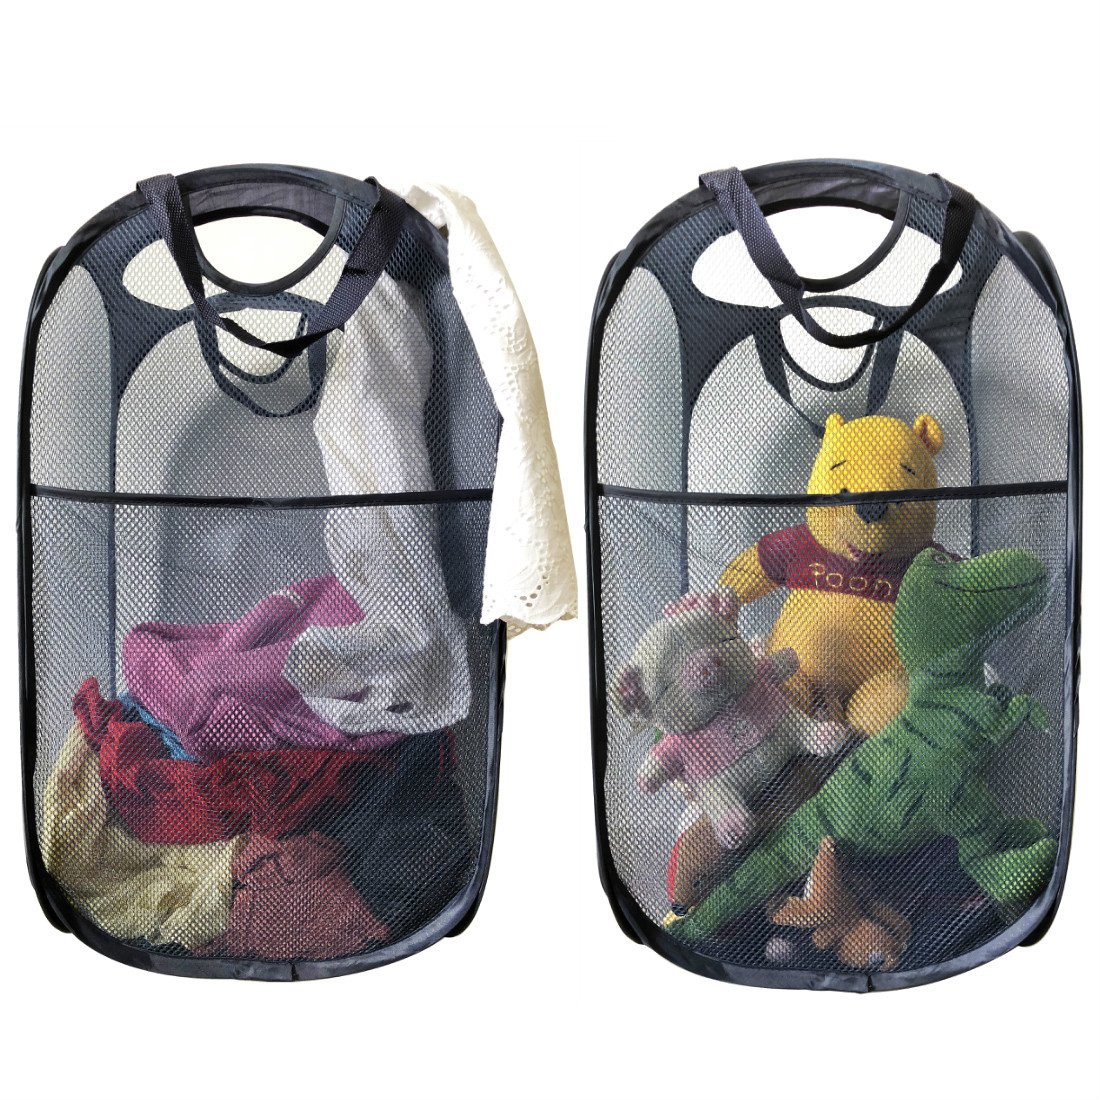 MDcharm 2 Pop up Laundry hampers - Collapsible Laundry Basket, Dirty Clothes Hamper with Handles, Plush Toy Organizer by MDcharm (Image #1)